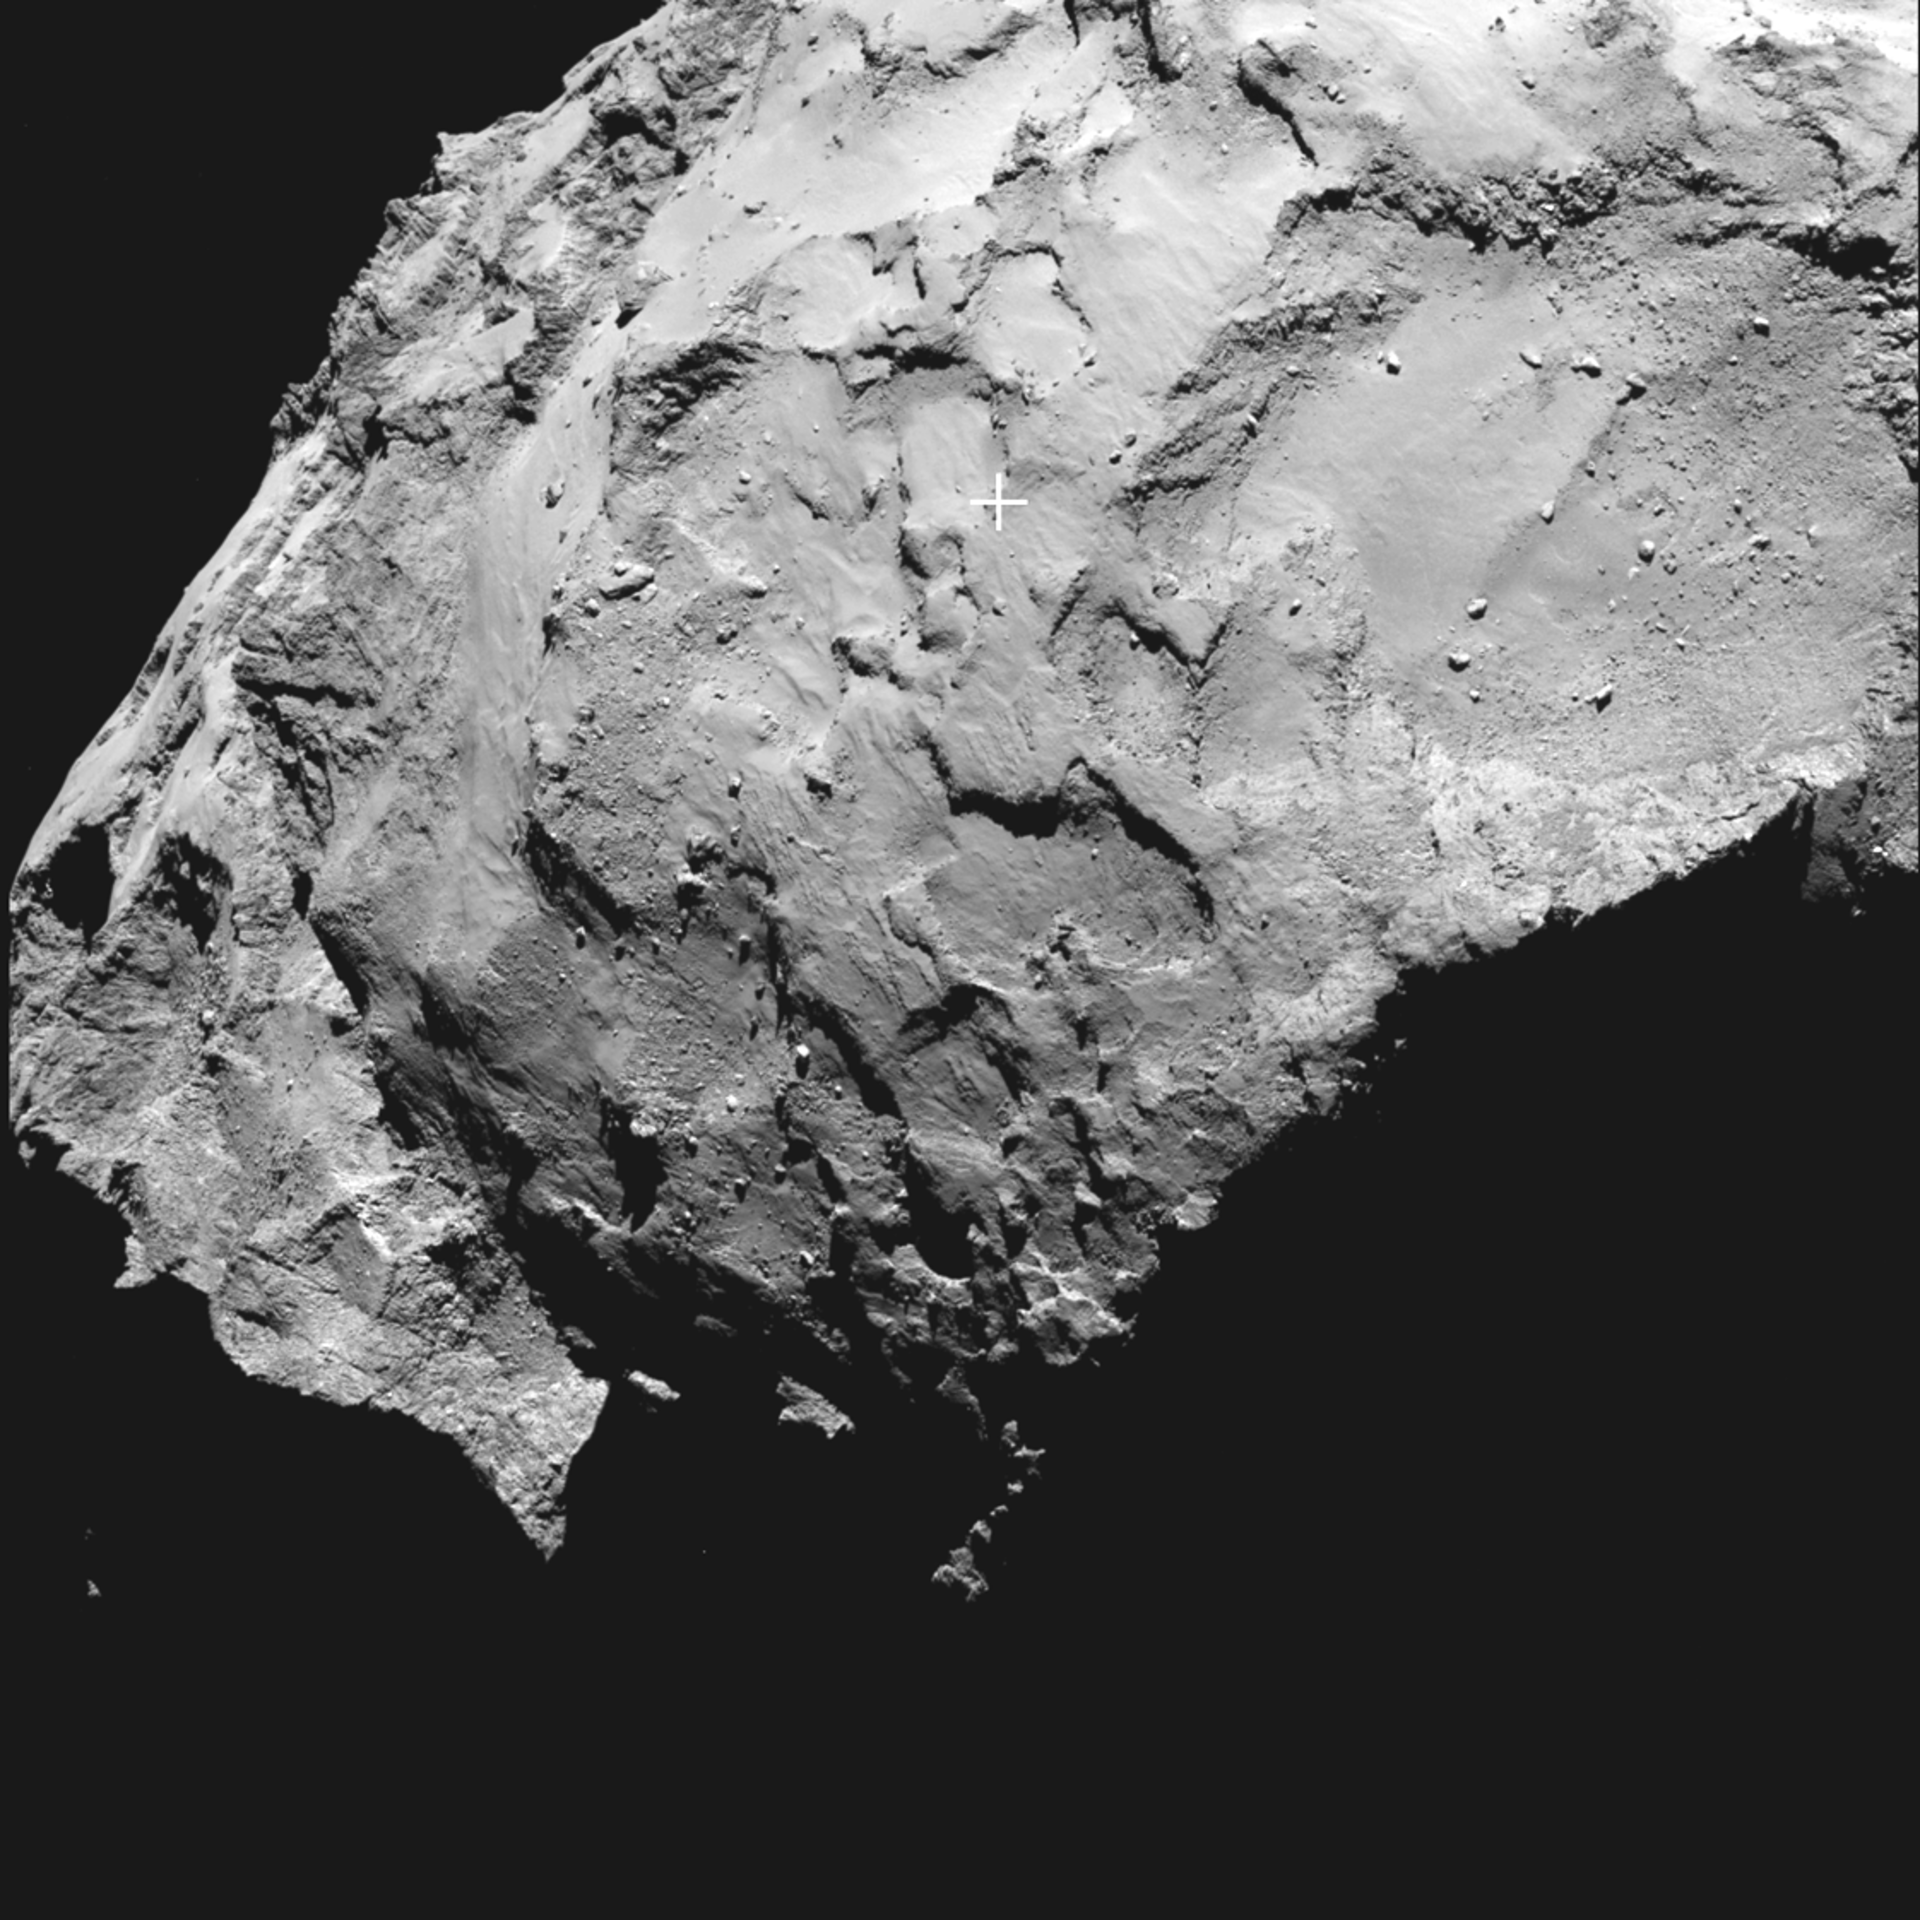 Philae's primary landing site